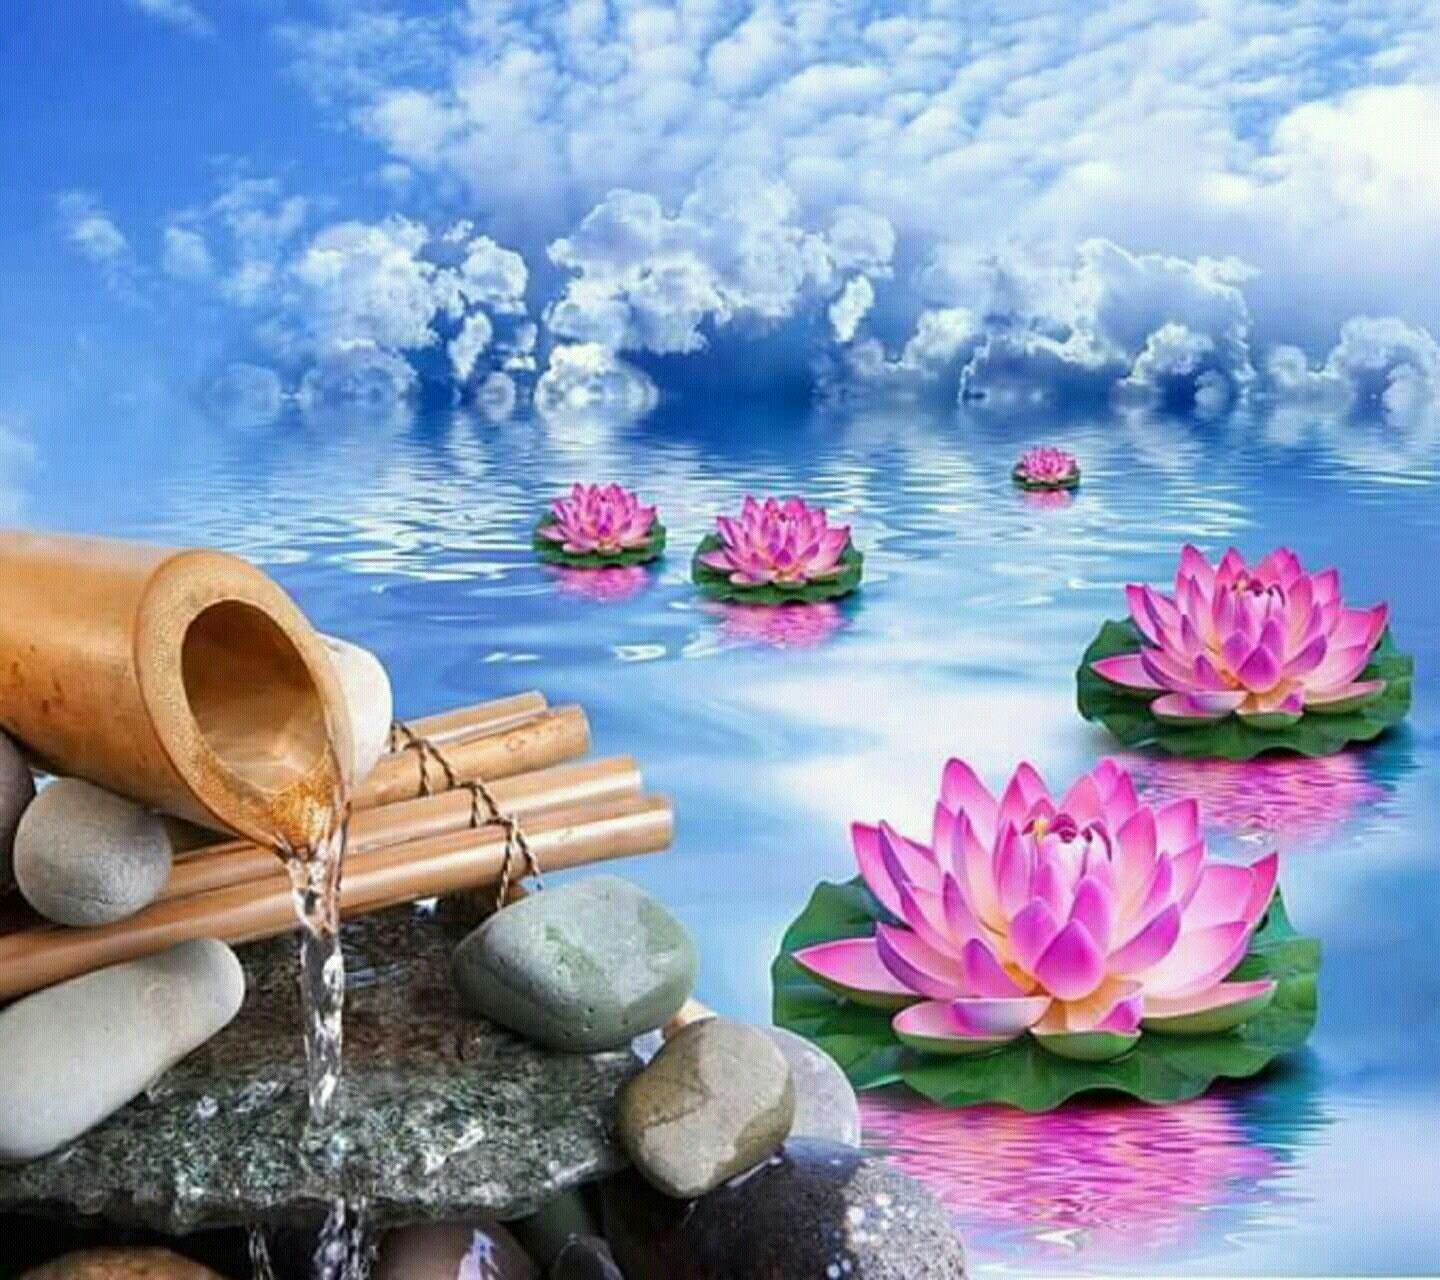 Pin by bint e ruqia on dpz pinterest feng shui considers the lotus a symbol of empowerment and enlightenment izmirmasajfo